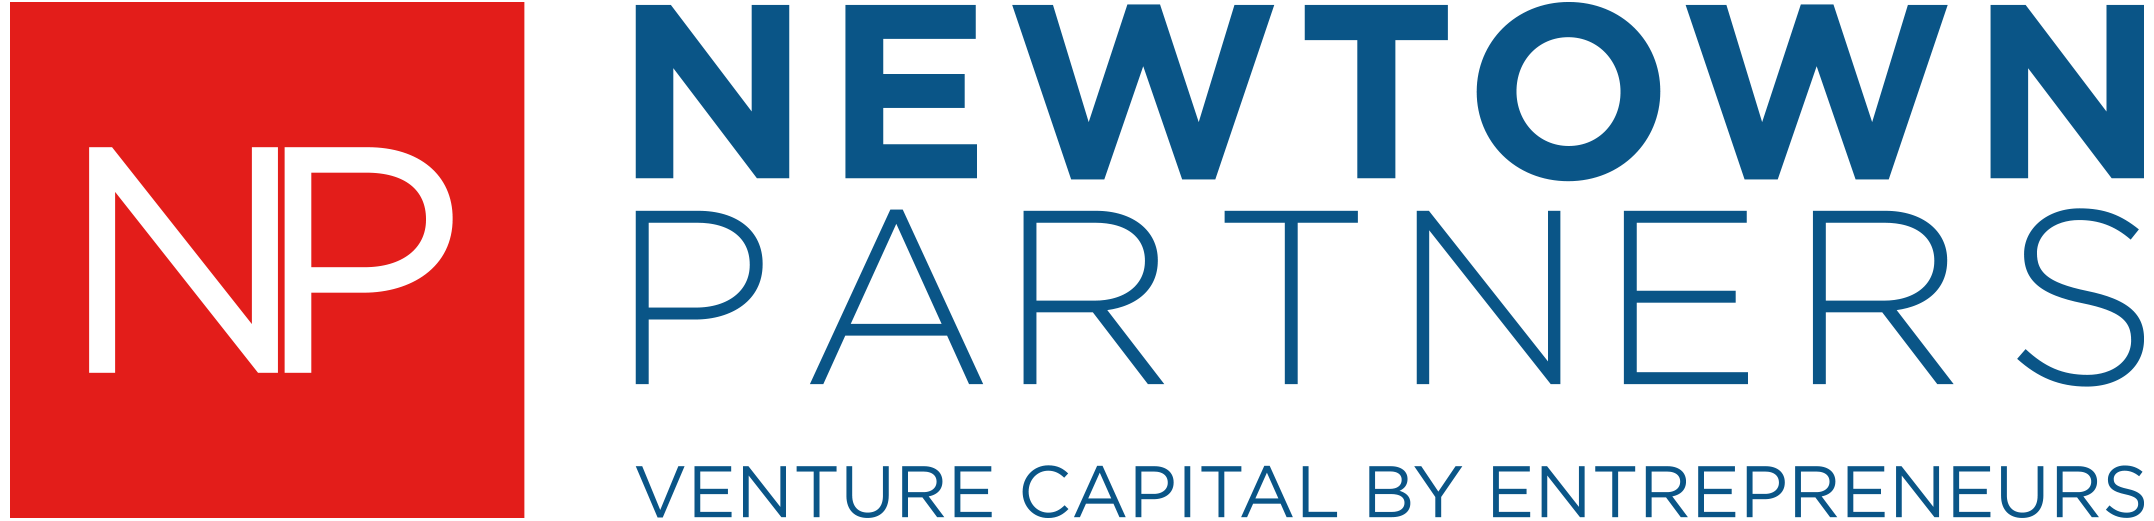 Newtown Partners Logo